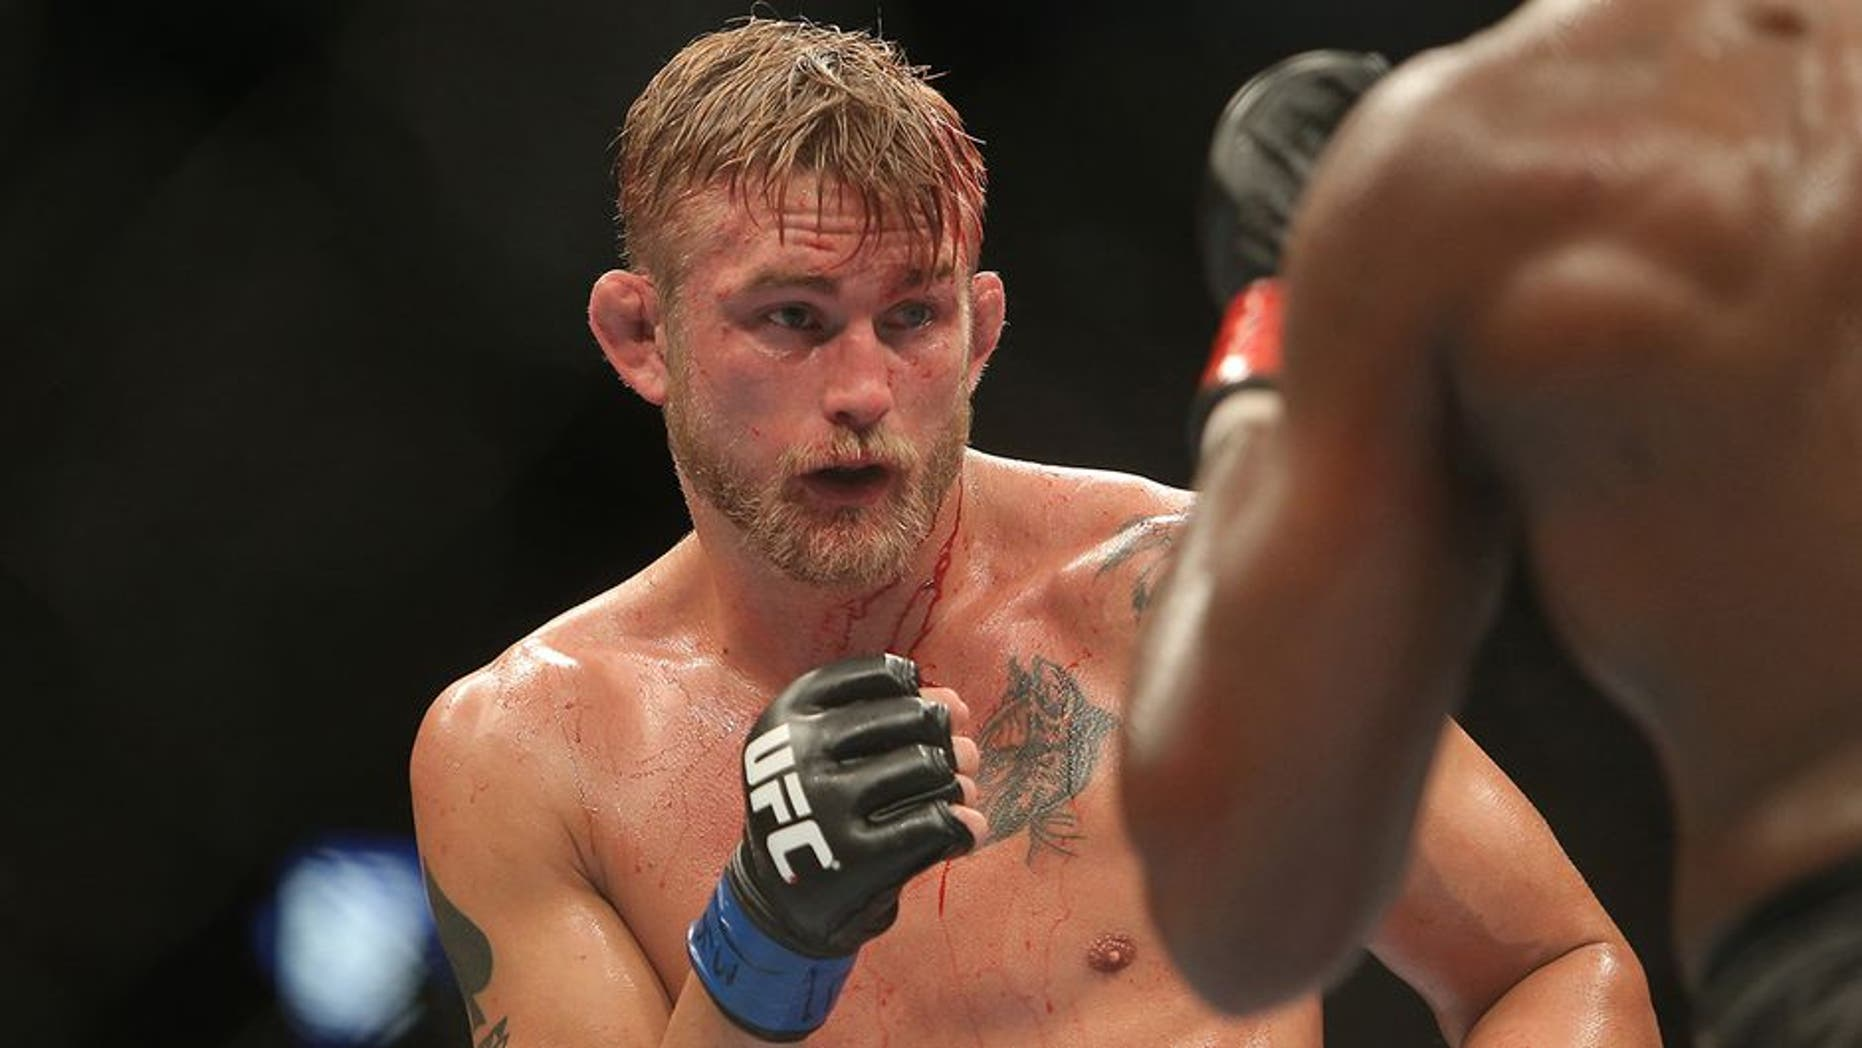 Sep 21, 2013; Toronto, Ontario, CAN; Alexander Gustafsson (left) fights Jon Jones during their Light Heavyweight Championship bout at UFC 165 at the Air Canada Centre. Mandatory Credit: Tom Szczerbowski-USA TODAY Sports